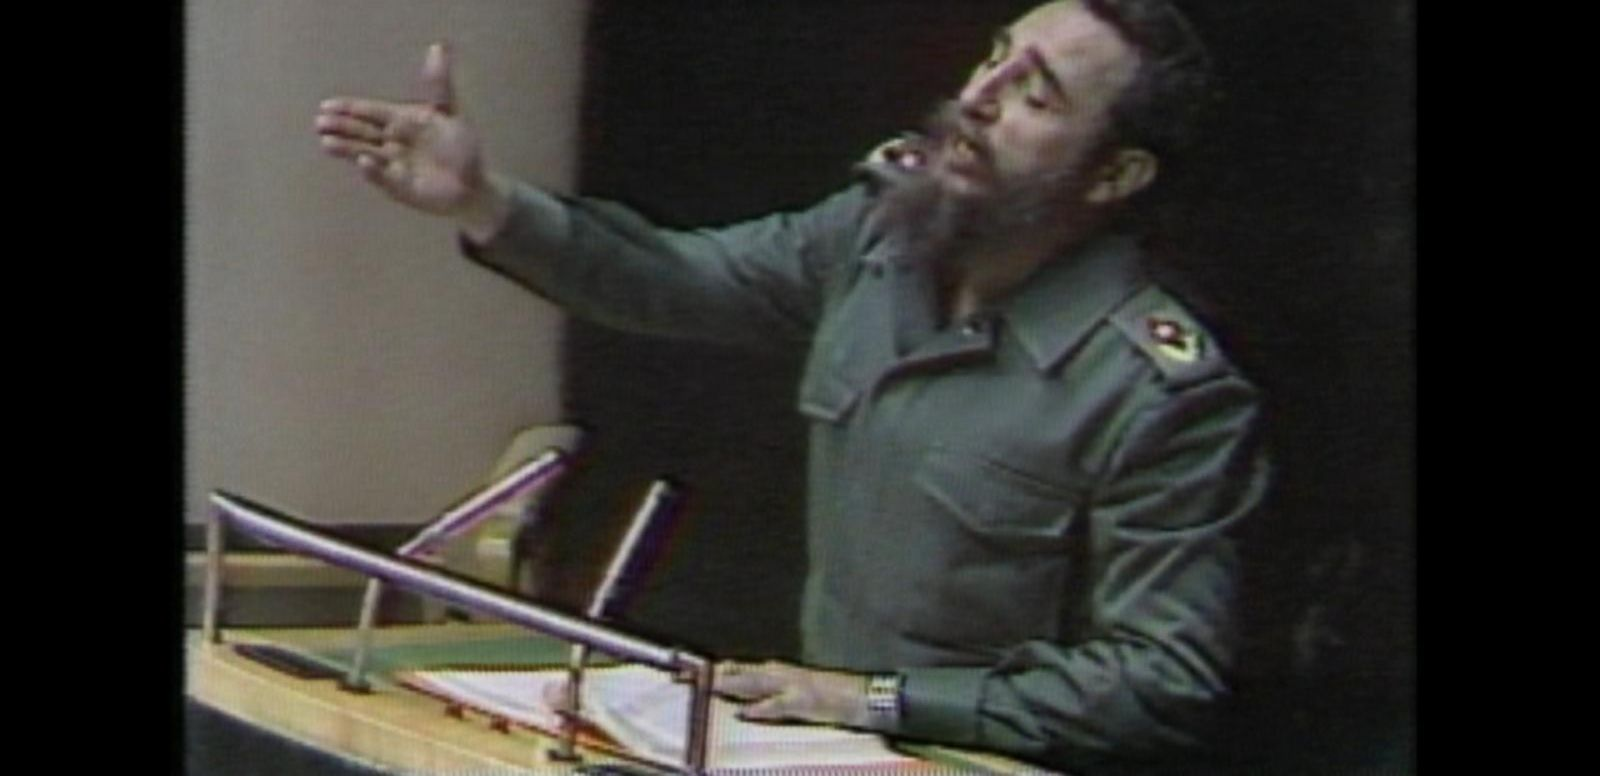 VIDEO: Oct. 12, 1979: In a U.N. address, Castro implores wealthy nations to help the poor.